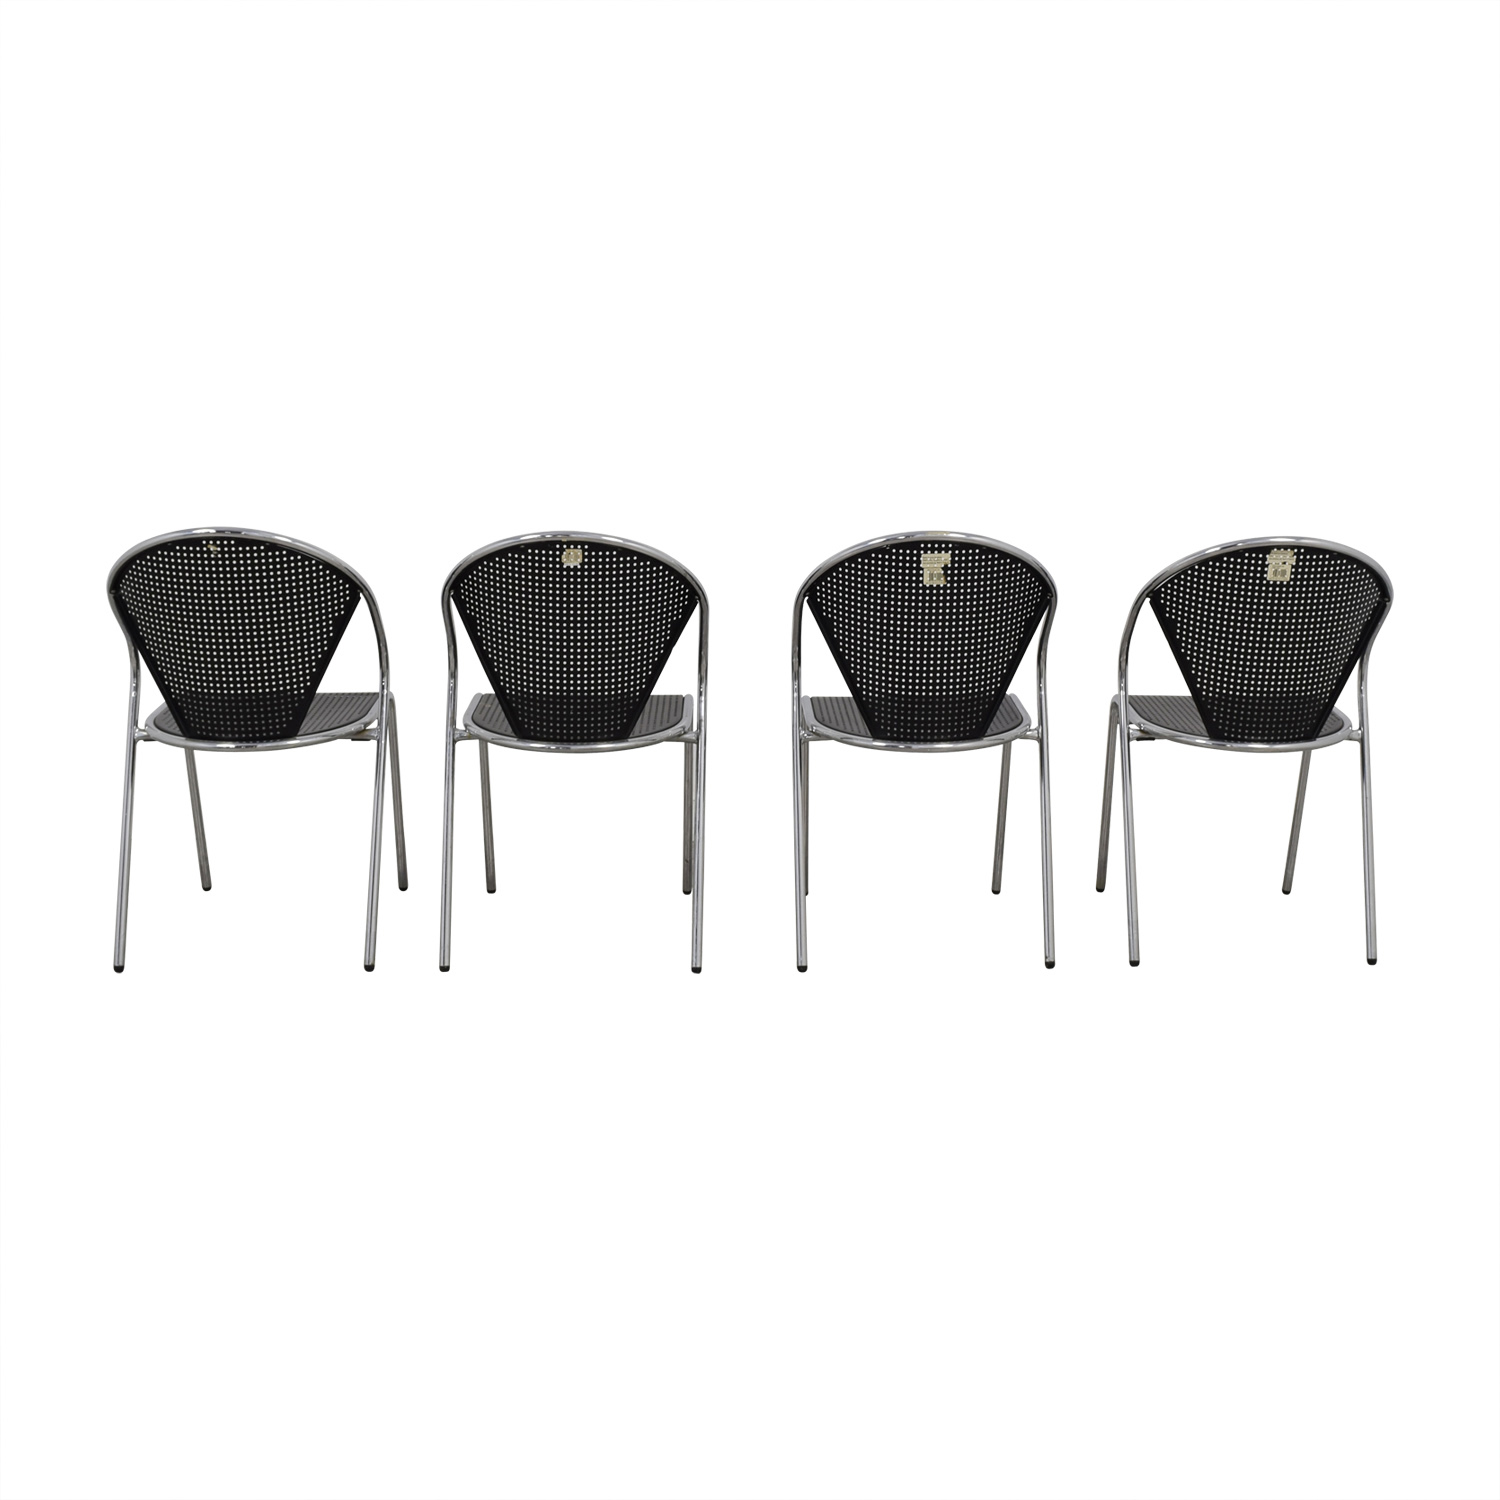 Manhattan Home Design Manhattan Home Design Protech Black Steel Stacking Chairs discount